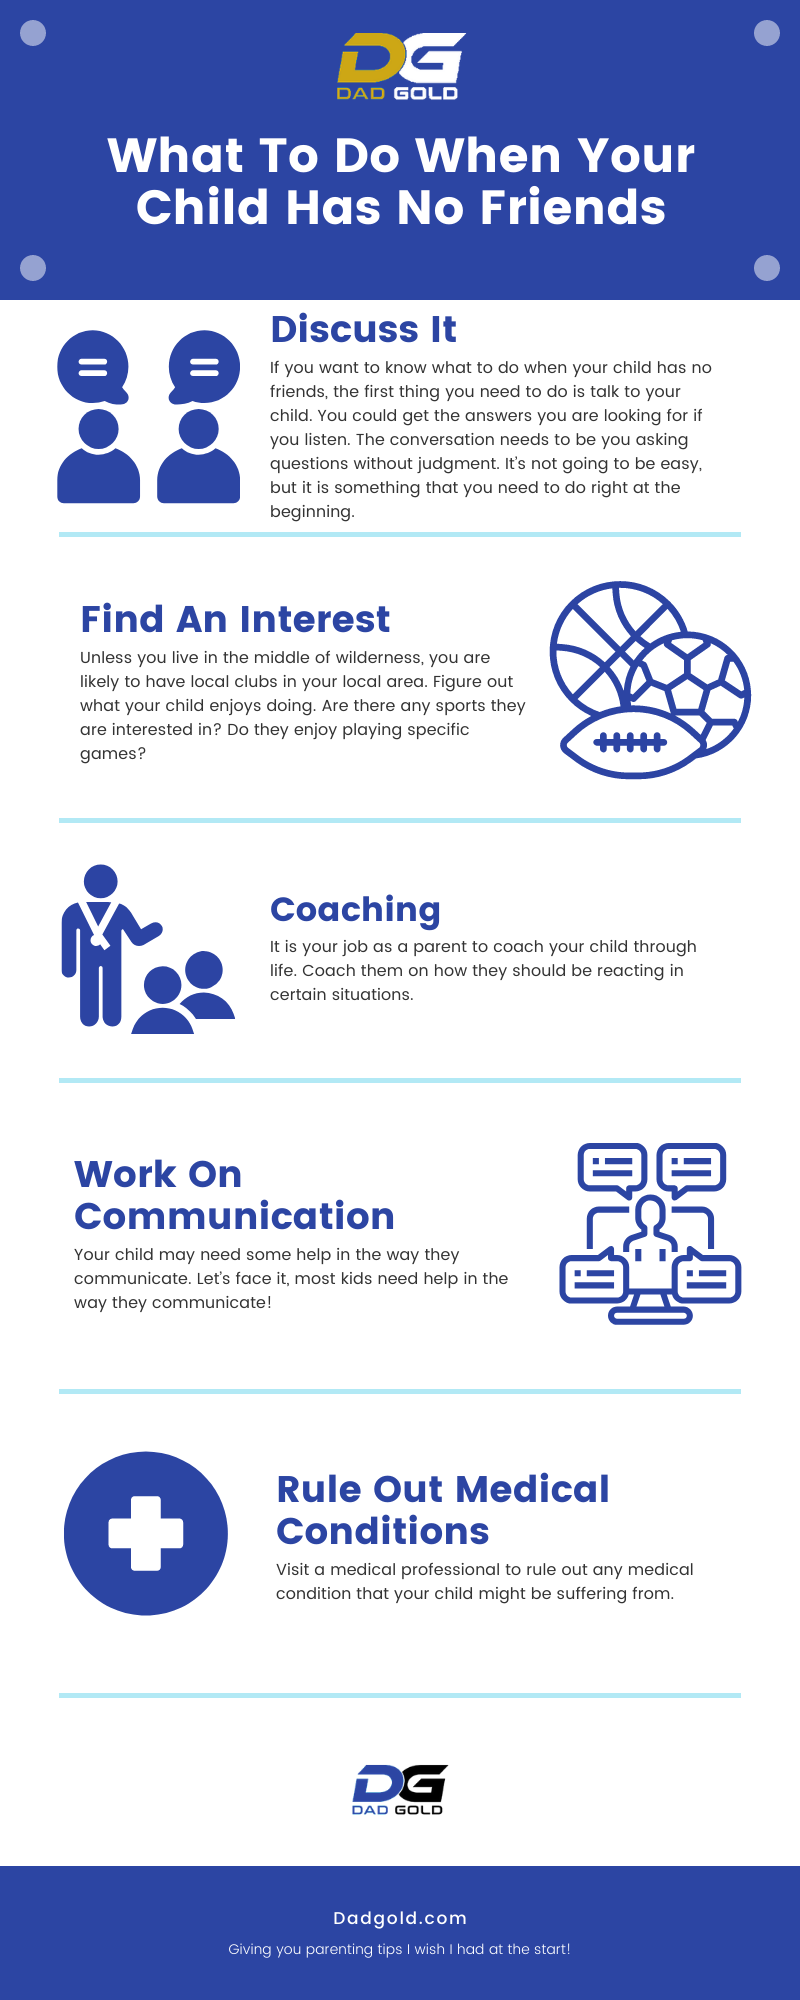 What To Do When Your Child Has No Friends Infographic